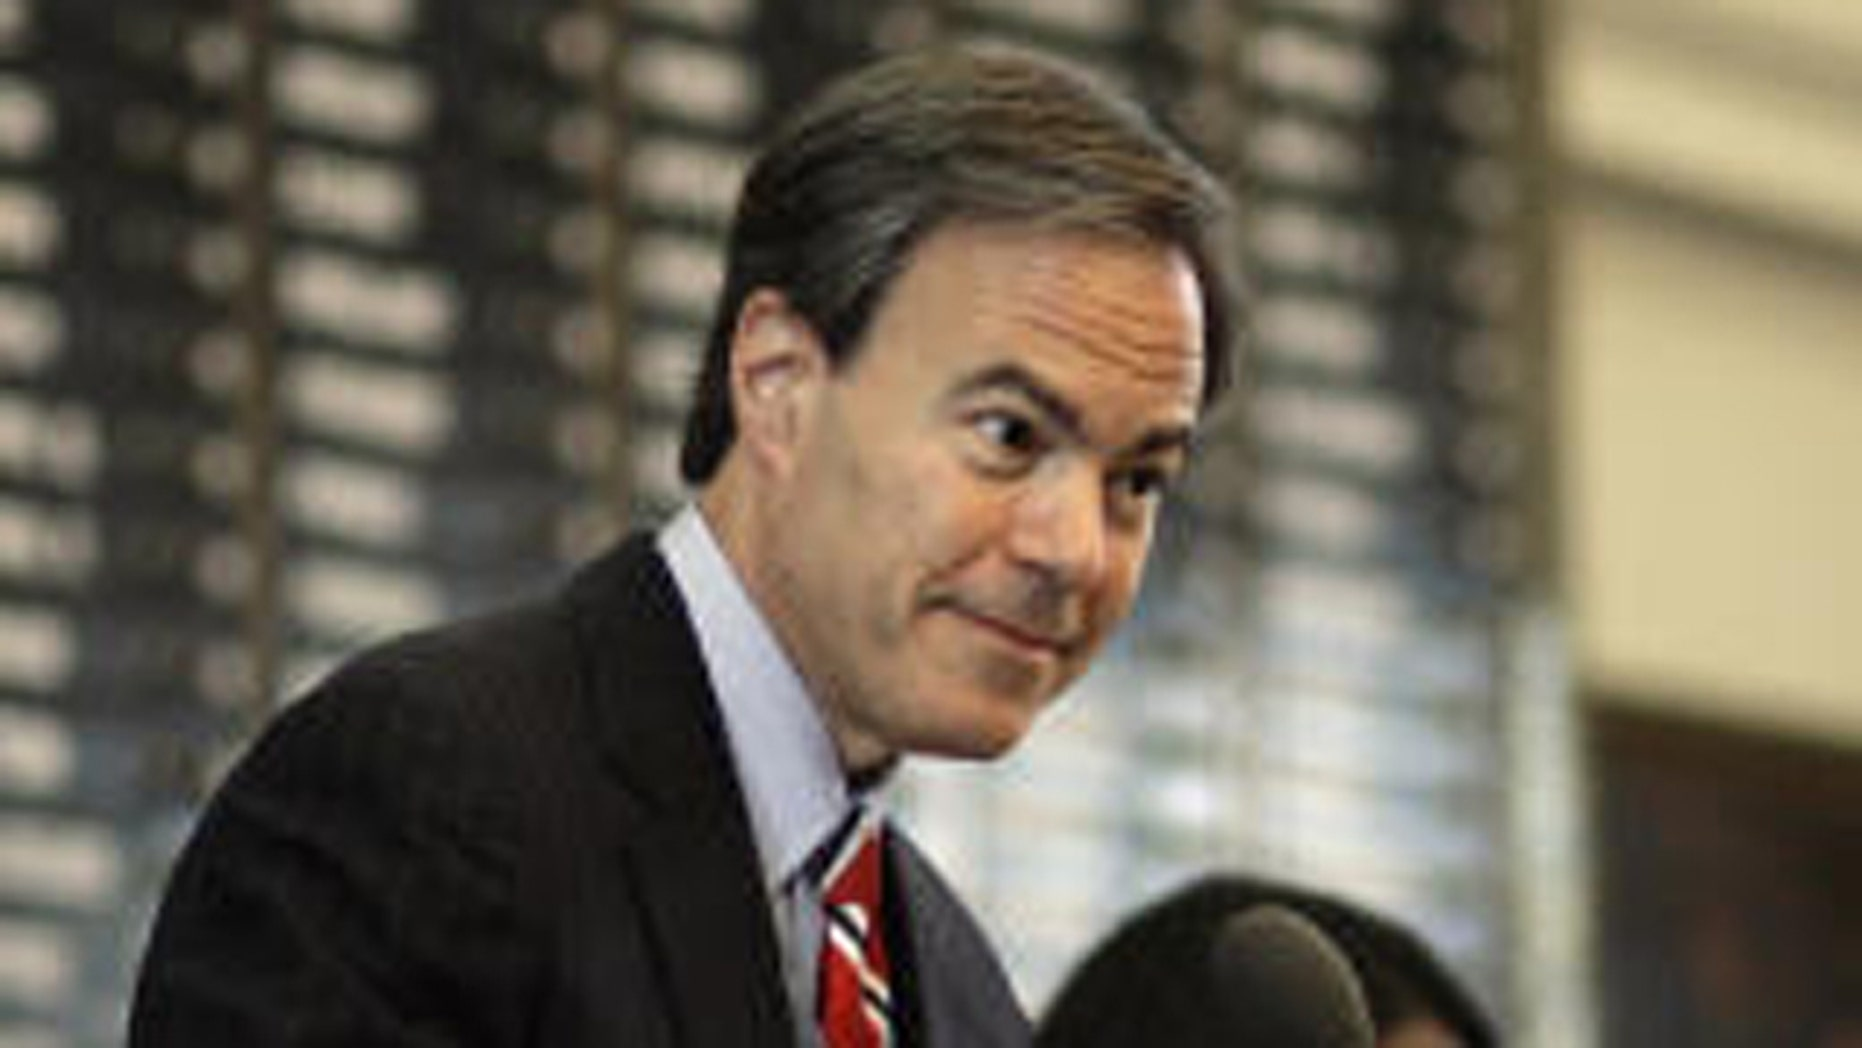 Shown here is Texas House Speaker Joe Straus. (AP Photo)